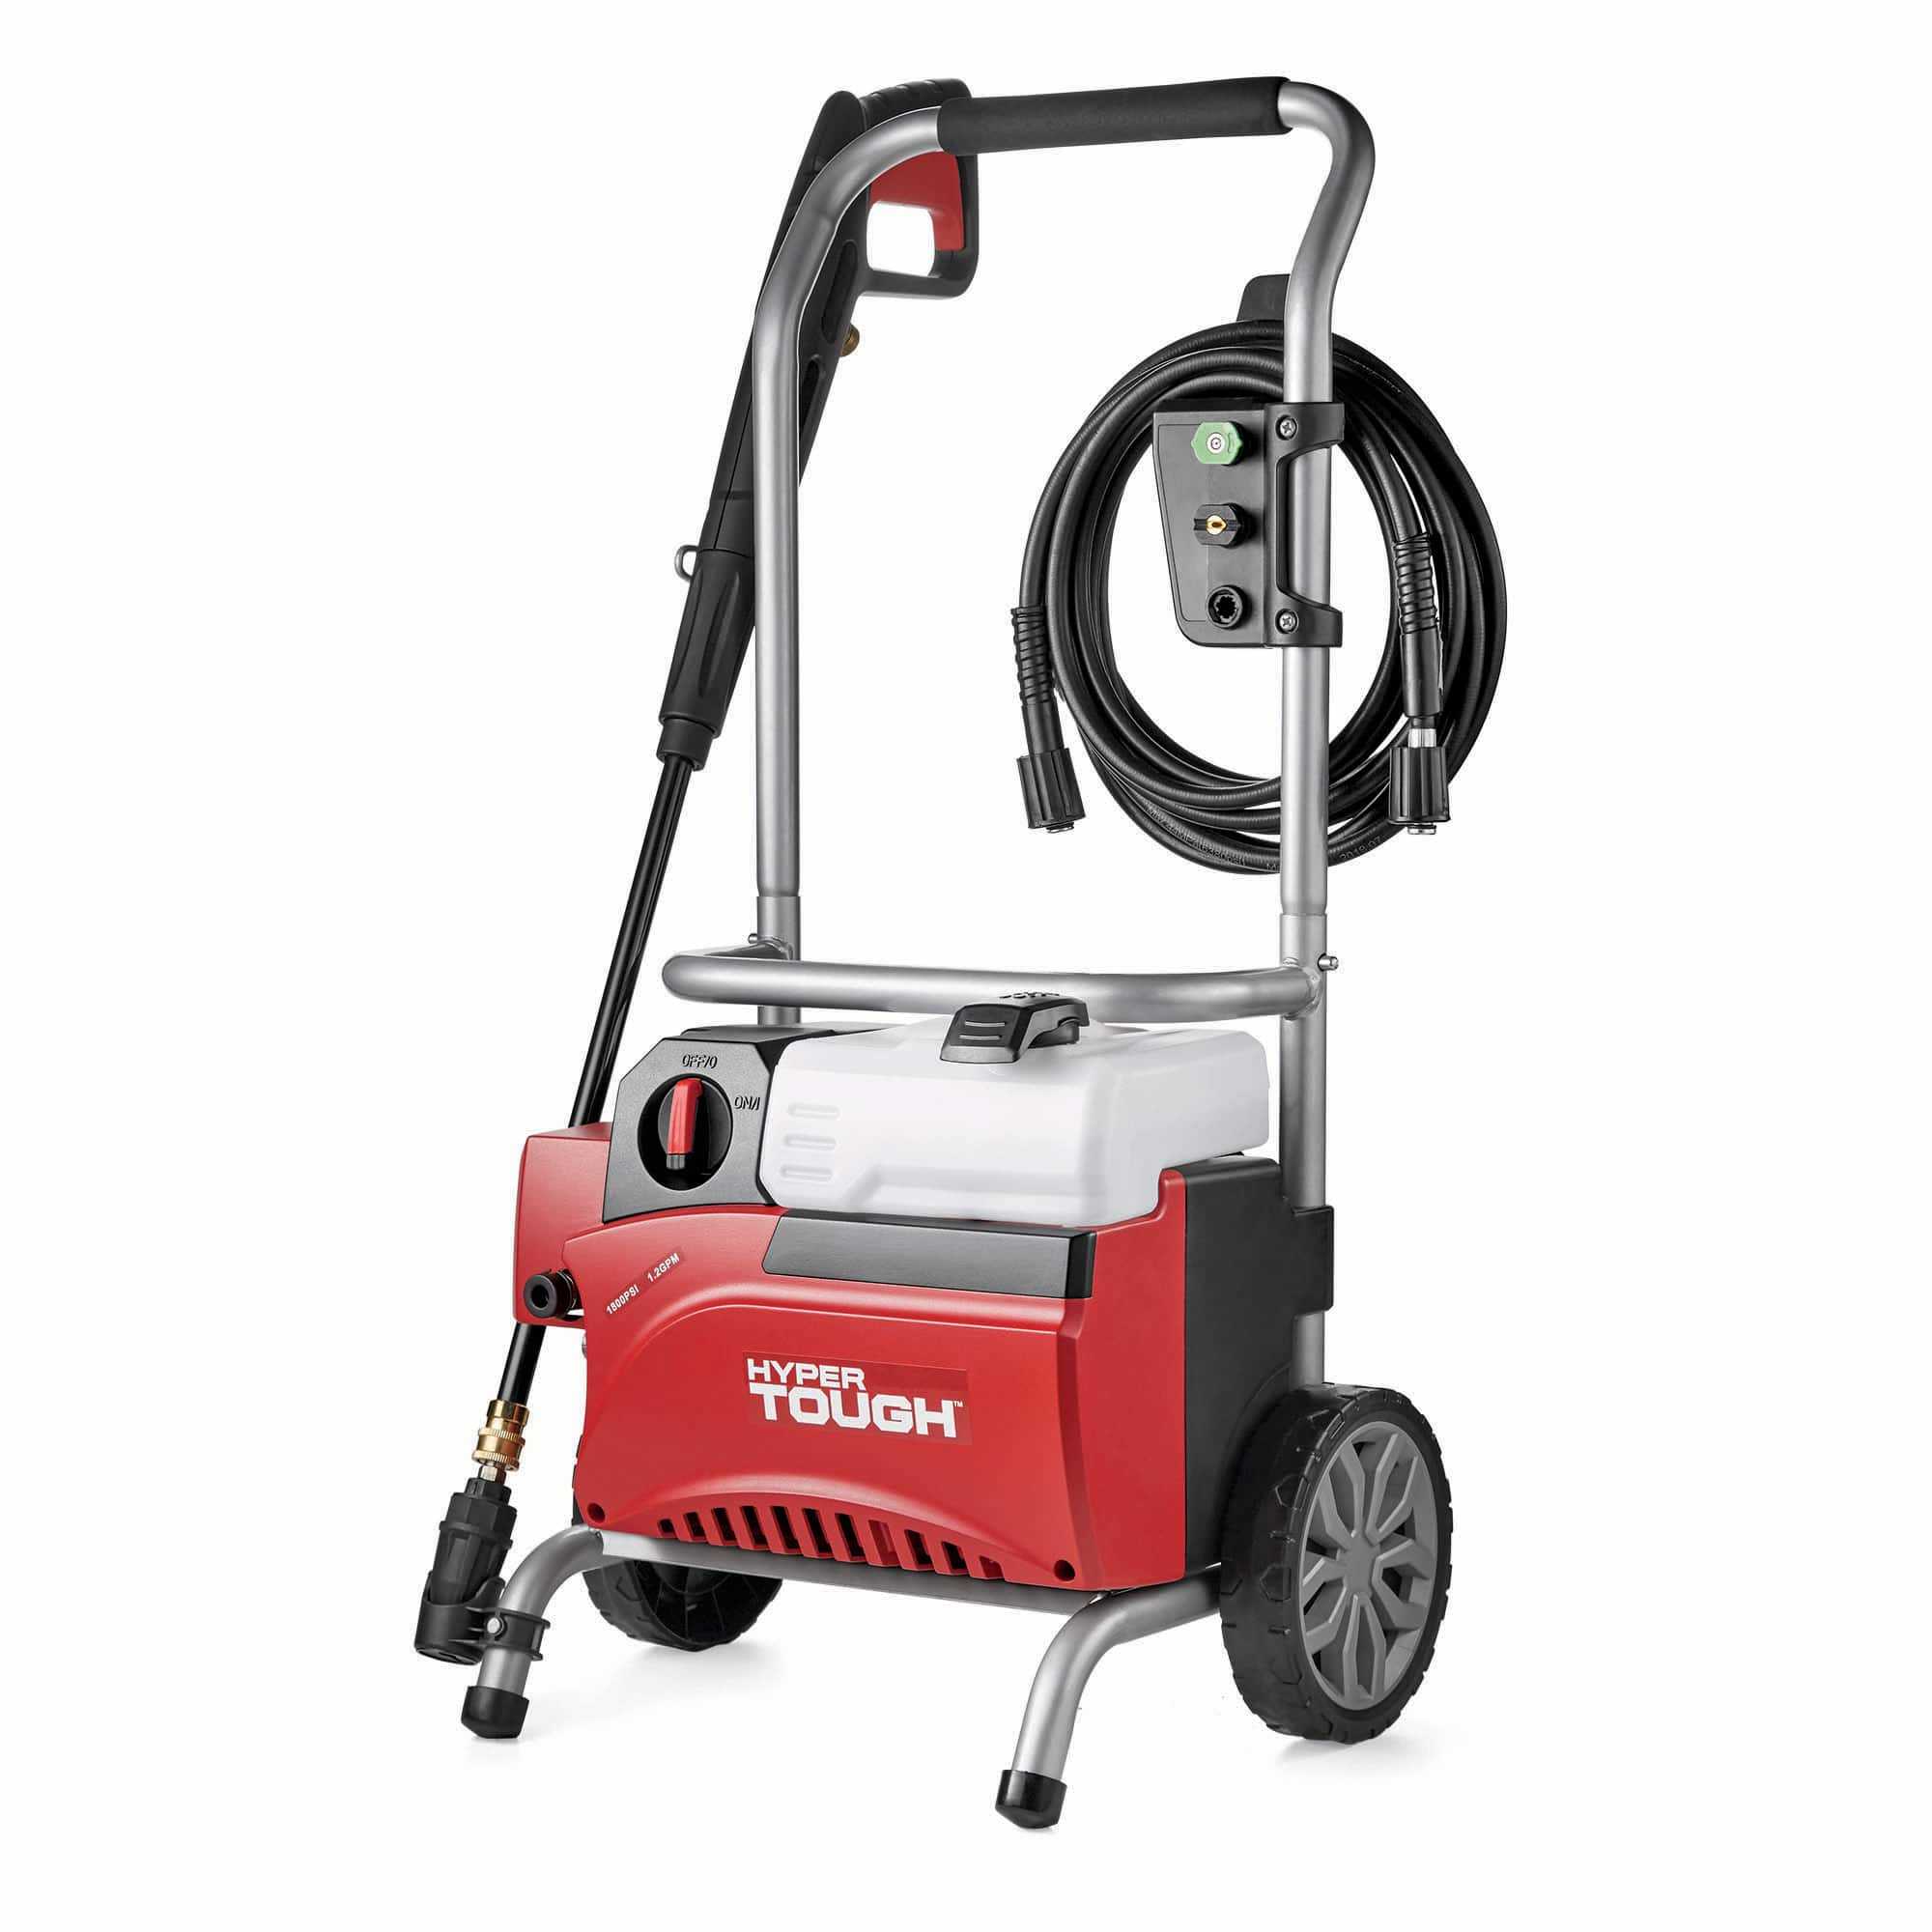 Hyper Tough 1800 PSI Electric Pressure Washer $79 + free s/h or pick-up